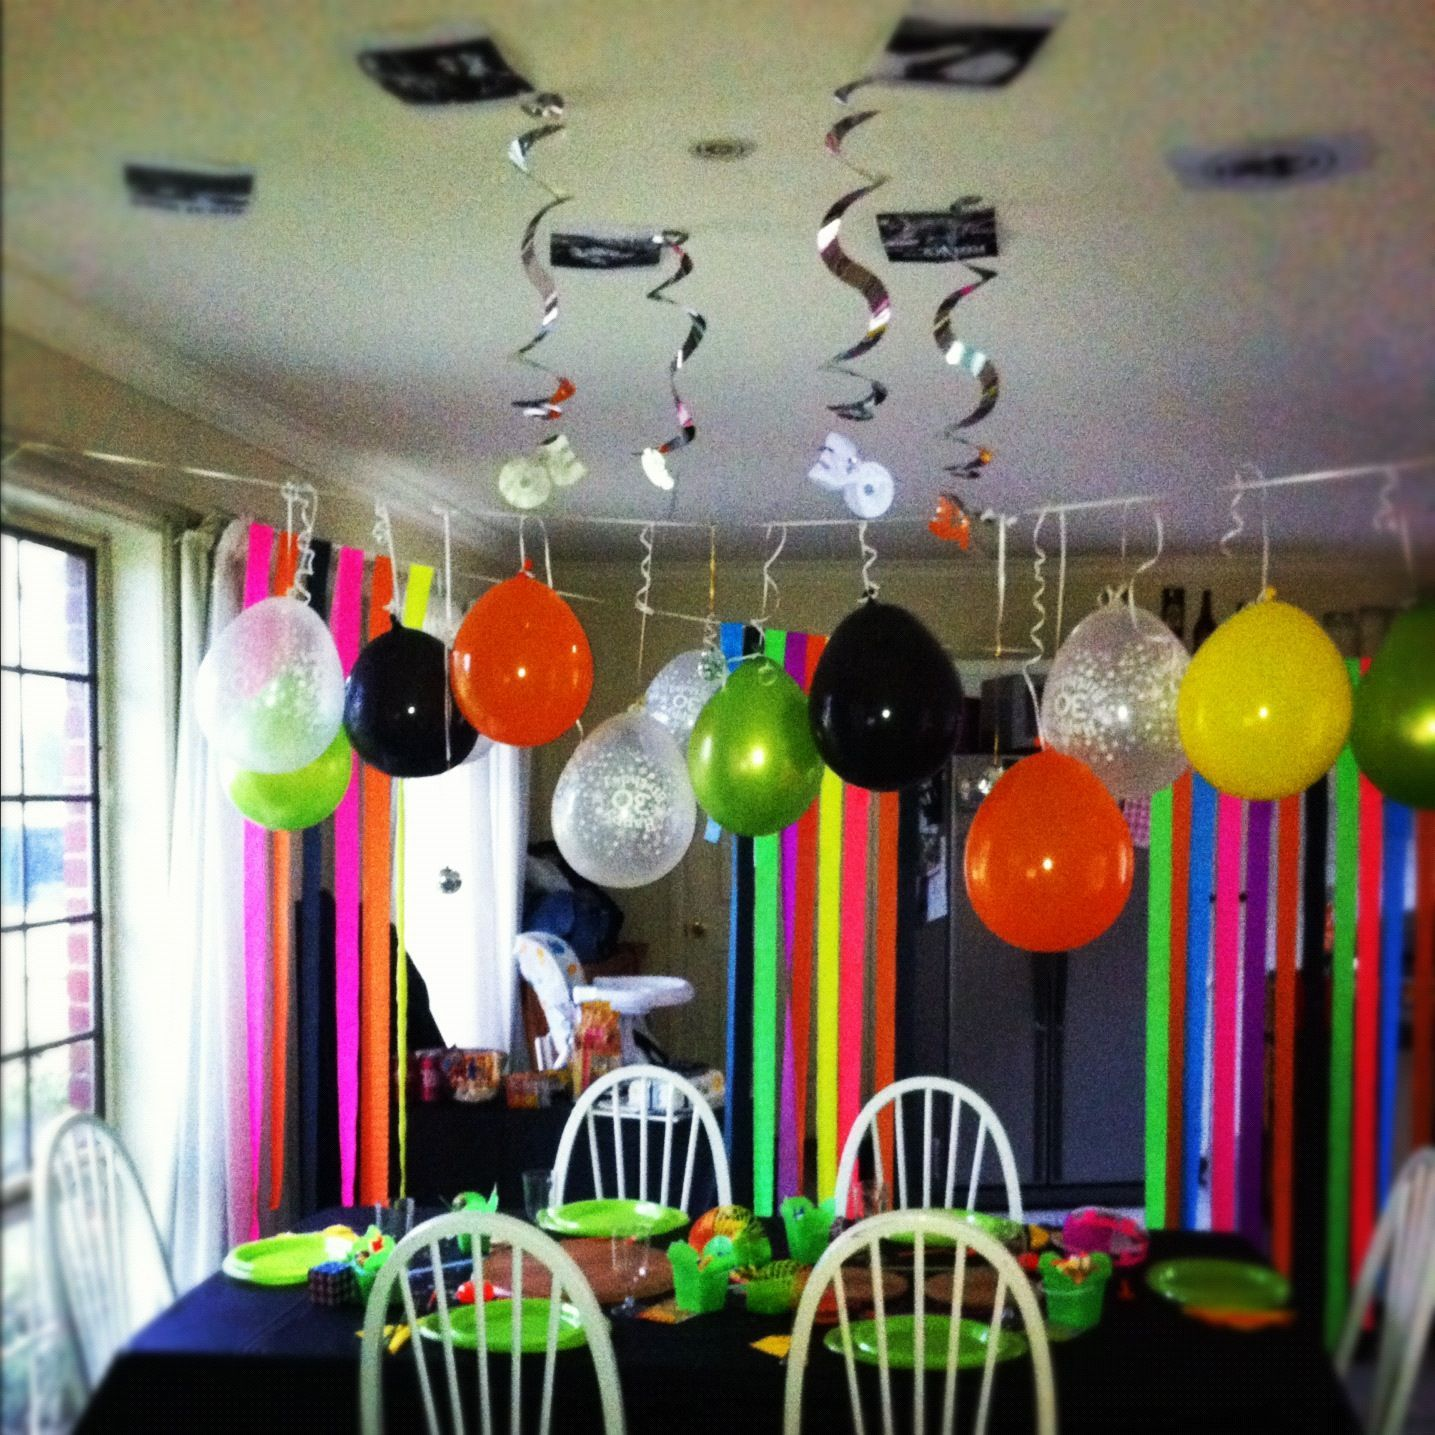 Related Image 80s Theme Party 80s Party Decorations Theme Party Decorations